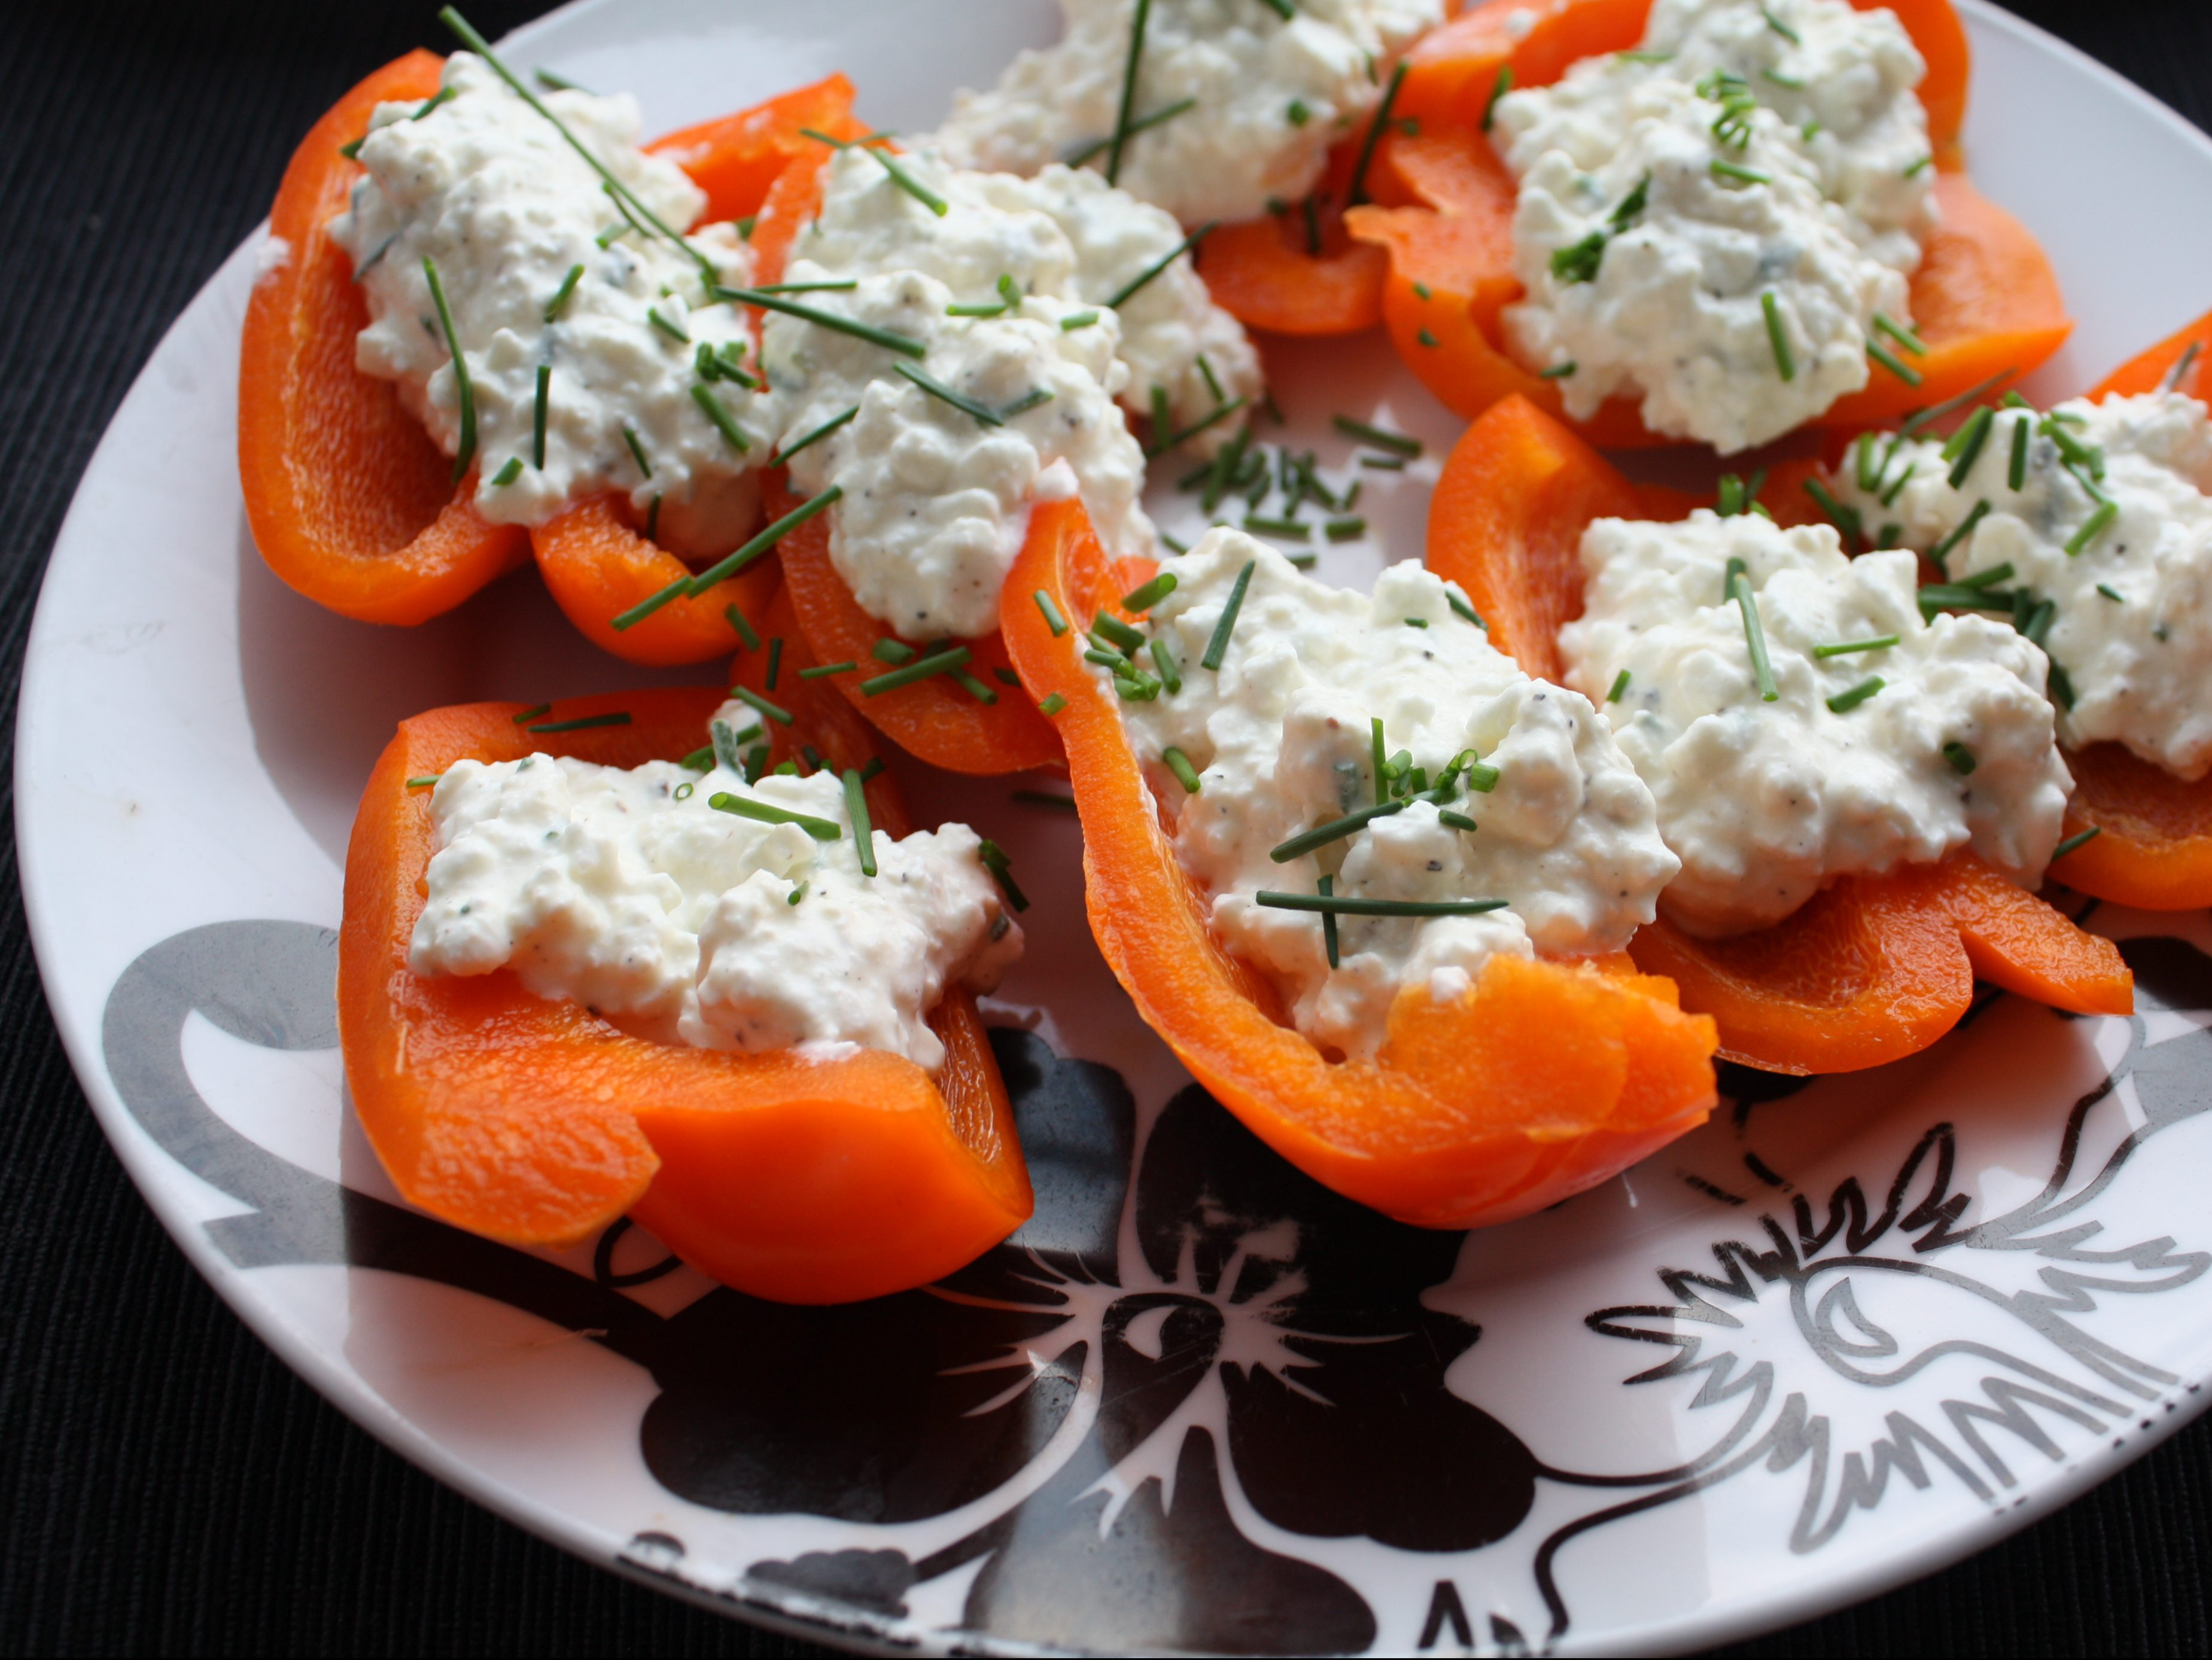 Gluten-free sweet pepper with cottage cheese and herbs